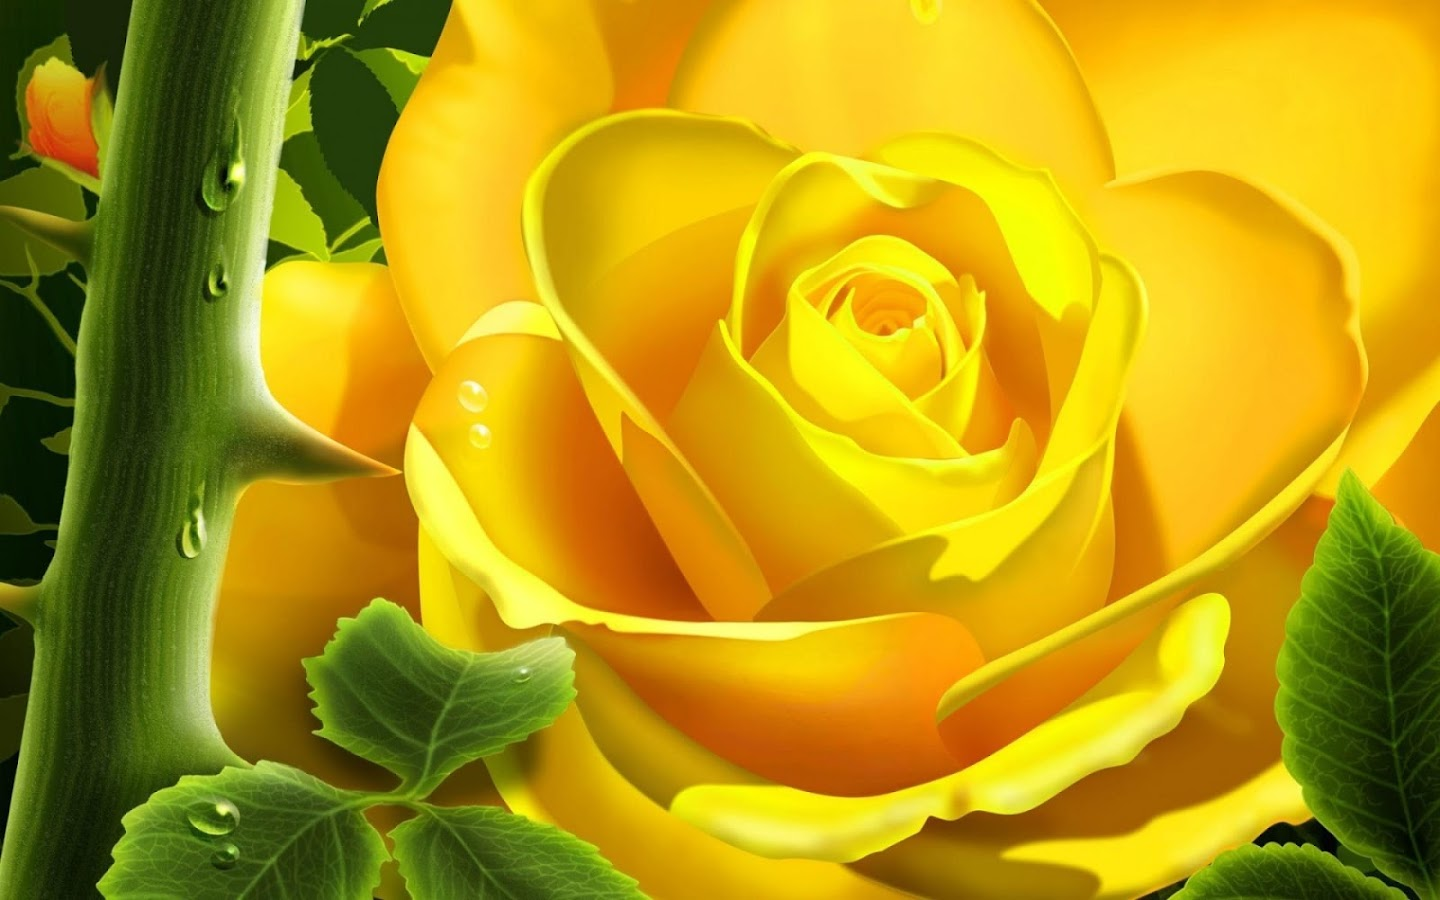 Hd for desktop nice rose mobile wallpapers 3d rose wallpaper free - 3d Rose Live Wallpaper Screenshot